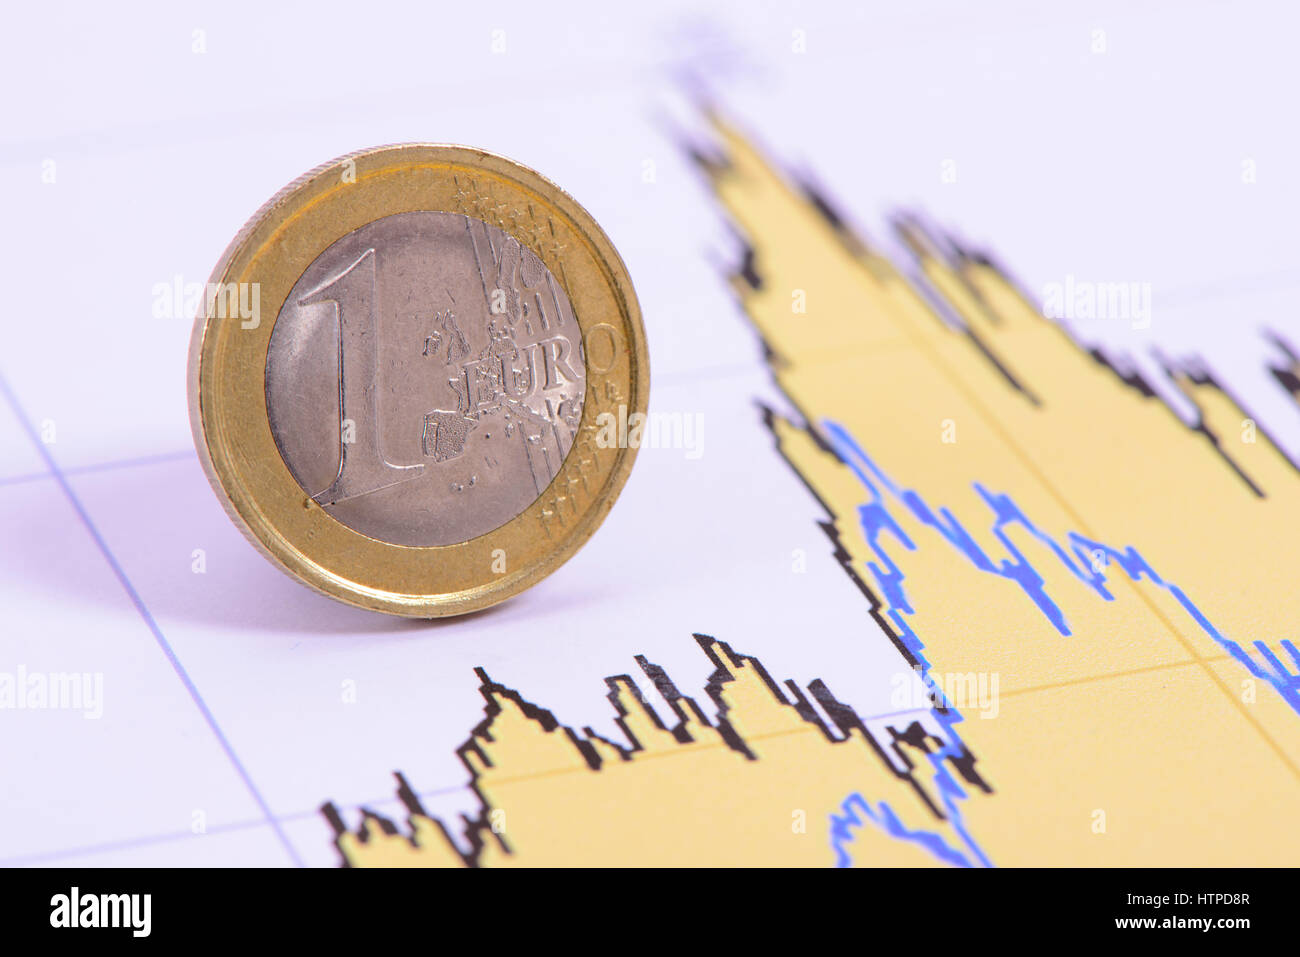 Euro coin of european currency laying in chart of exchange market - Stock Image